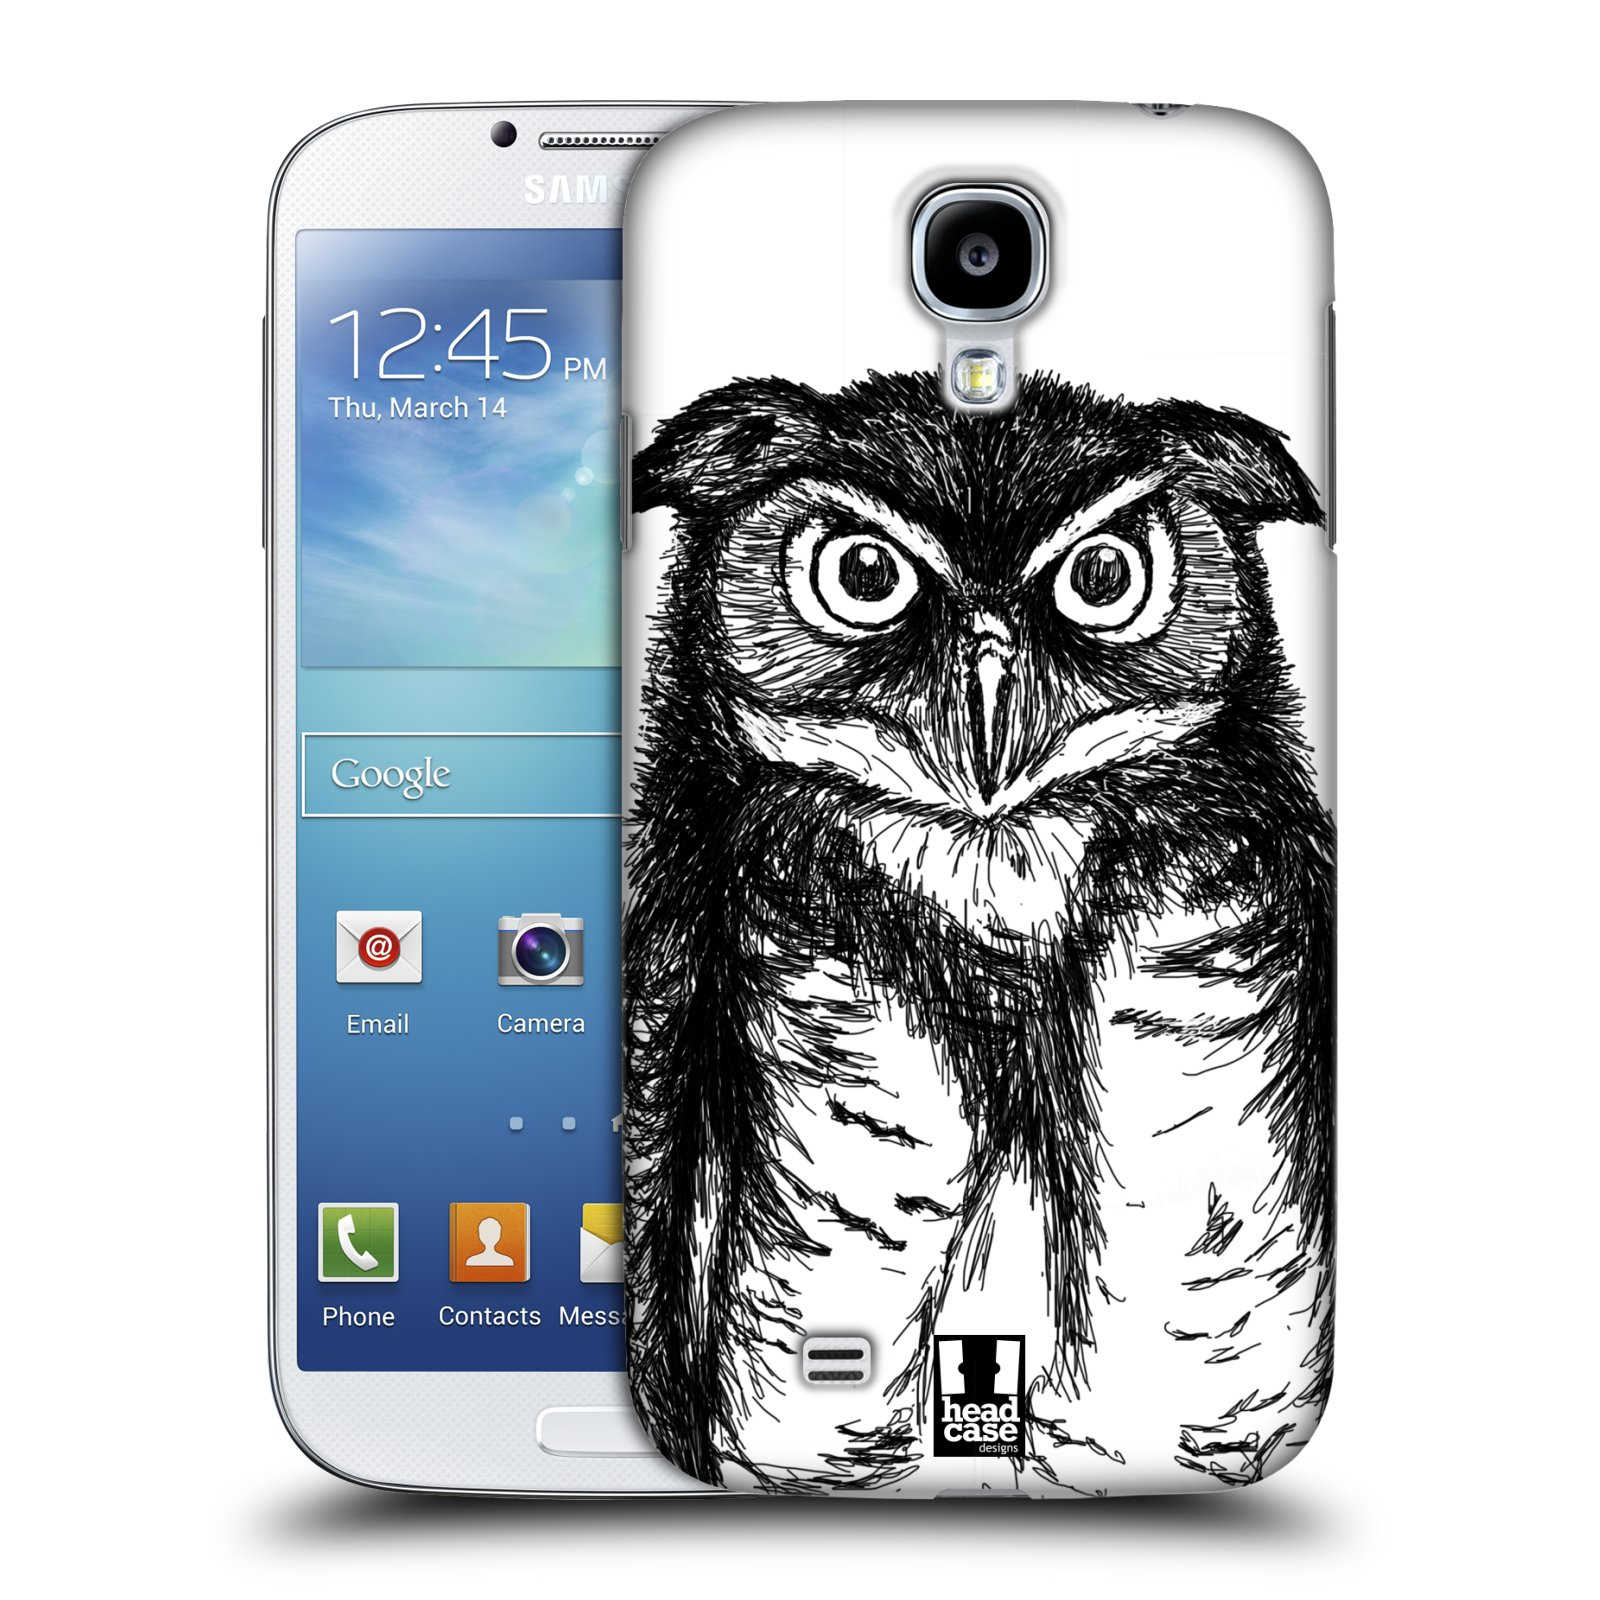 HEAD CASE DESIGNS HAND DRAWN ANIMAL CASE COVER FOR SAMSUNG GALAXY S4 I9500